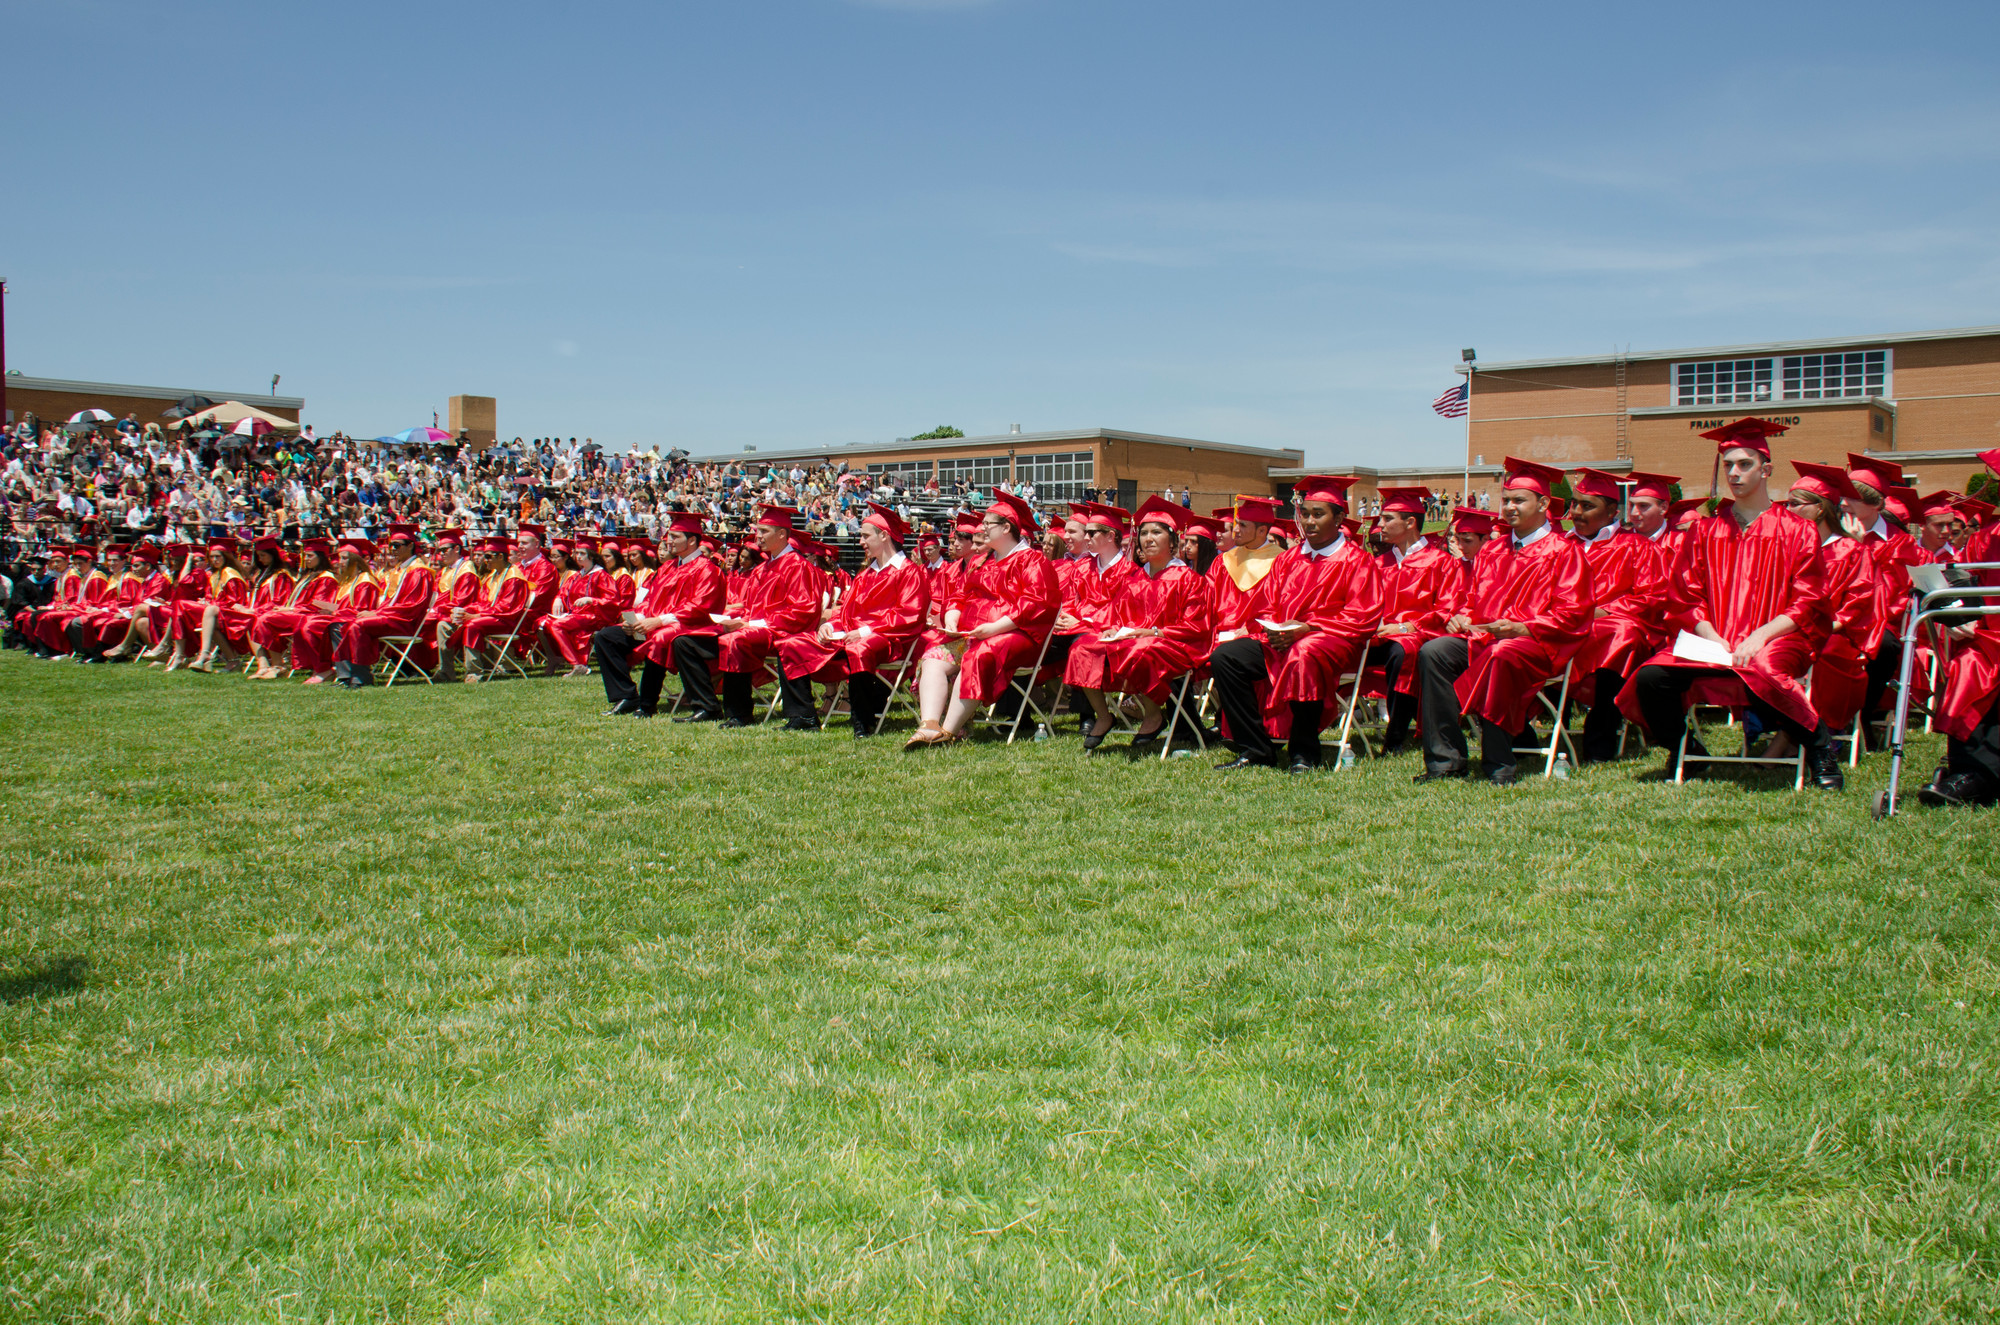 The graduating seniors lined the field under sunny skies, surrounded by their friends and family members in the bleachers.